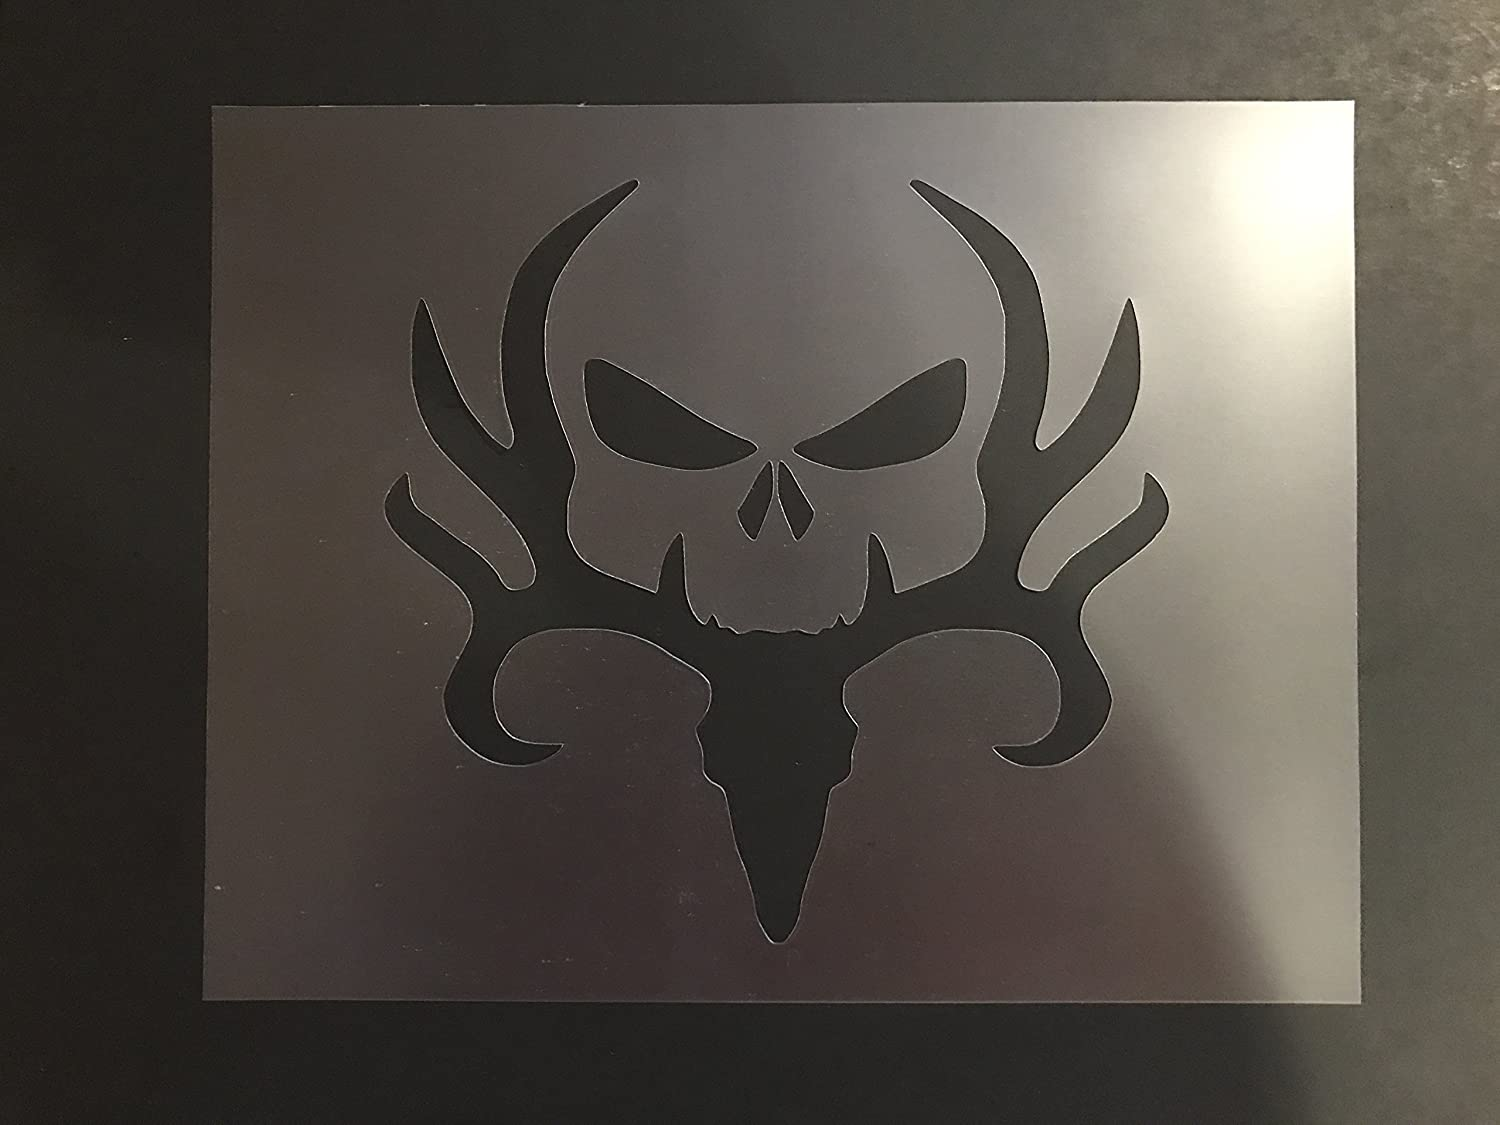 Deer and Skull Stencil #1 Reusable 10 mil Thick 7in x 9in sheet